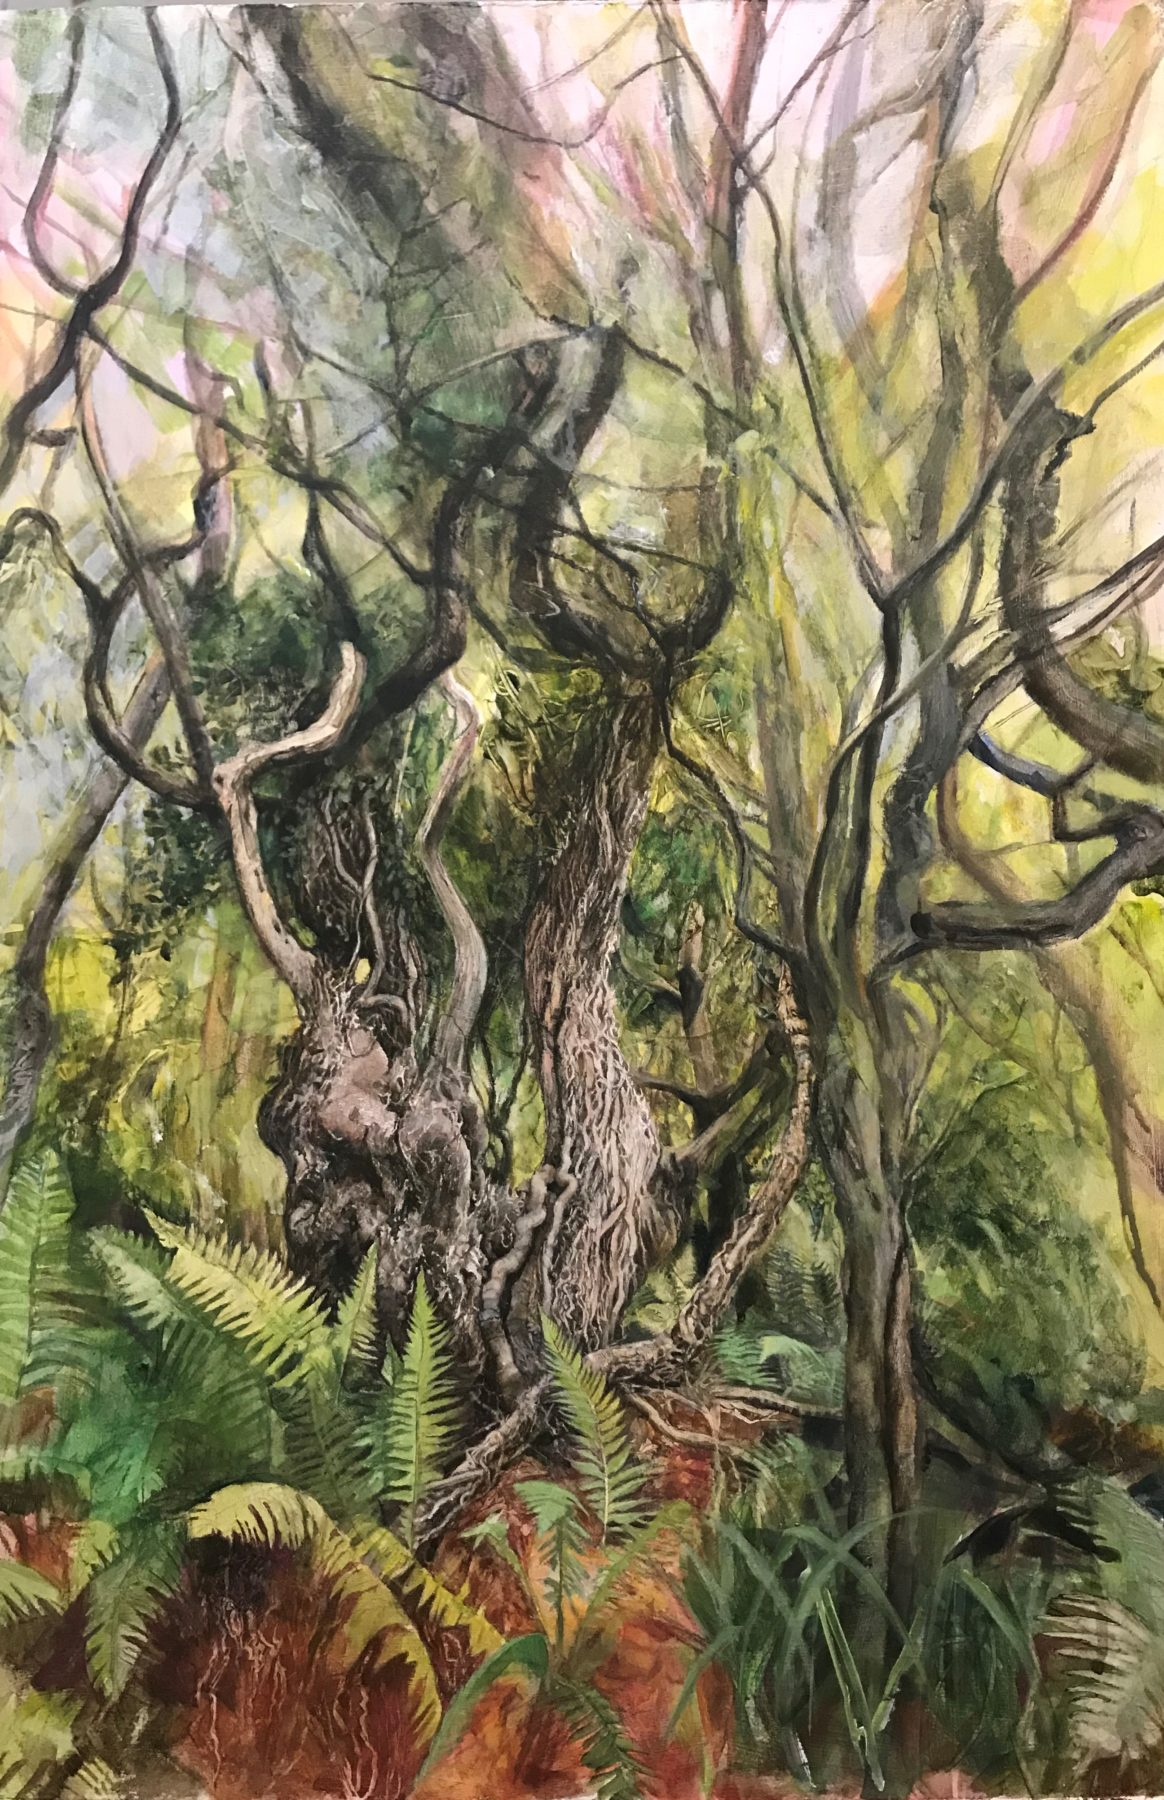 This is a portrait painting of twisting tree trunks and branches reaching upwards, with a dense bed of ferns at their base. A sky of pale pink and blue gives a slight dream-like quality to the composition.